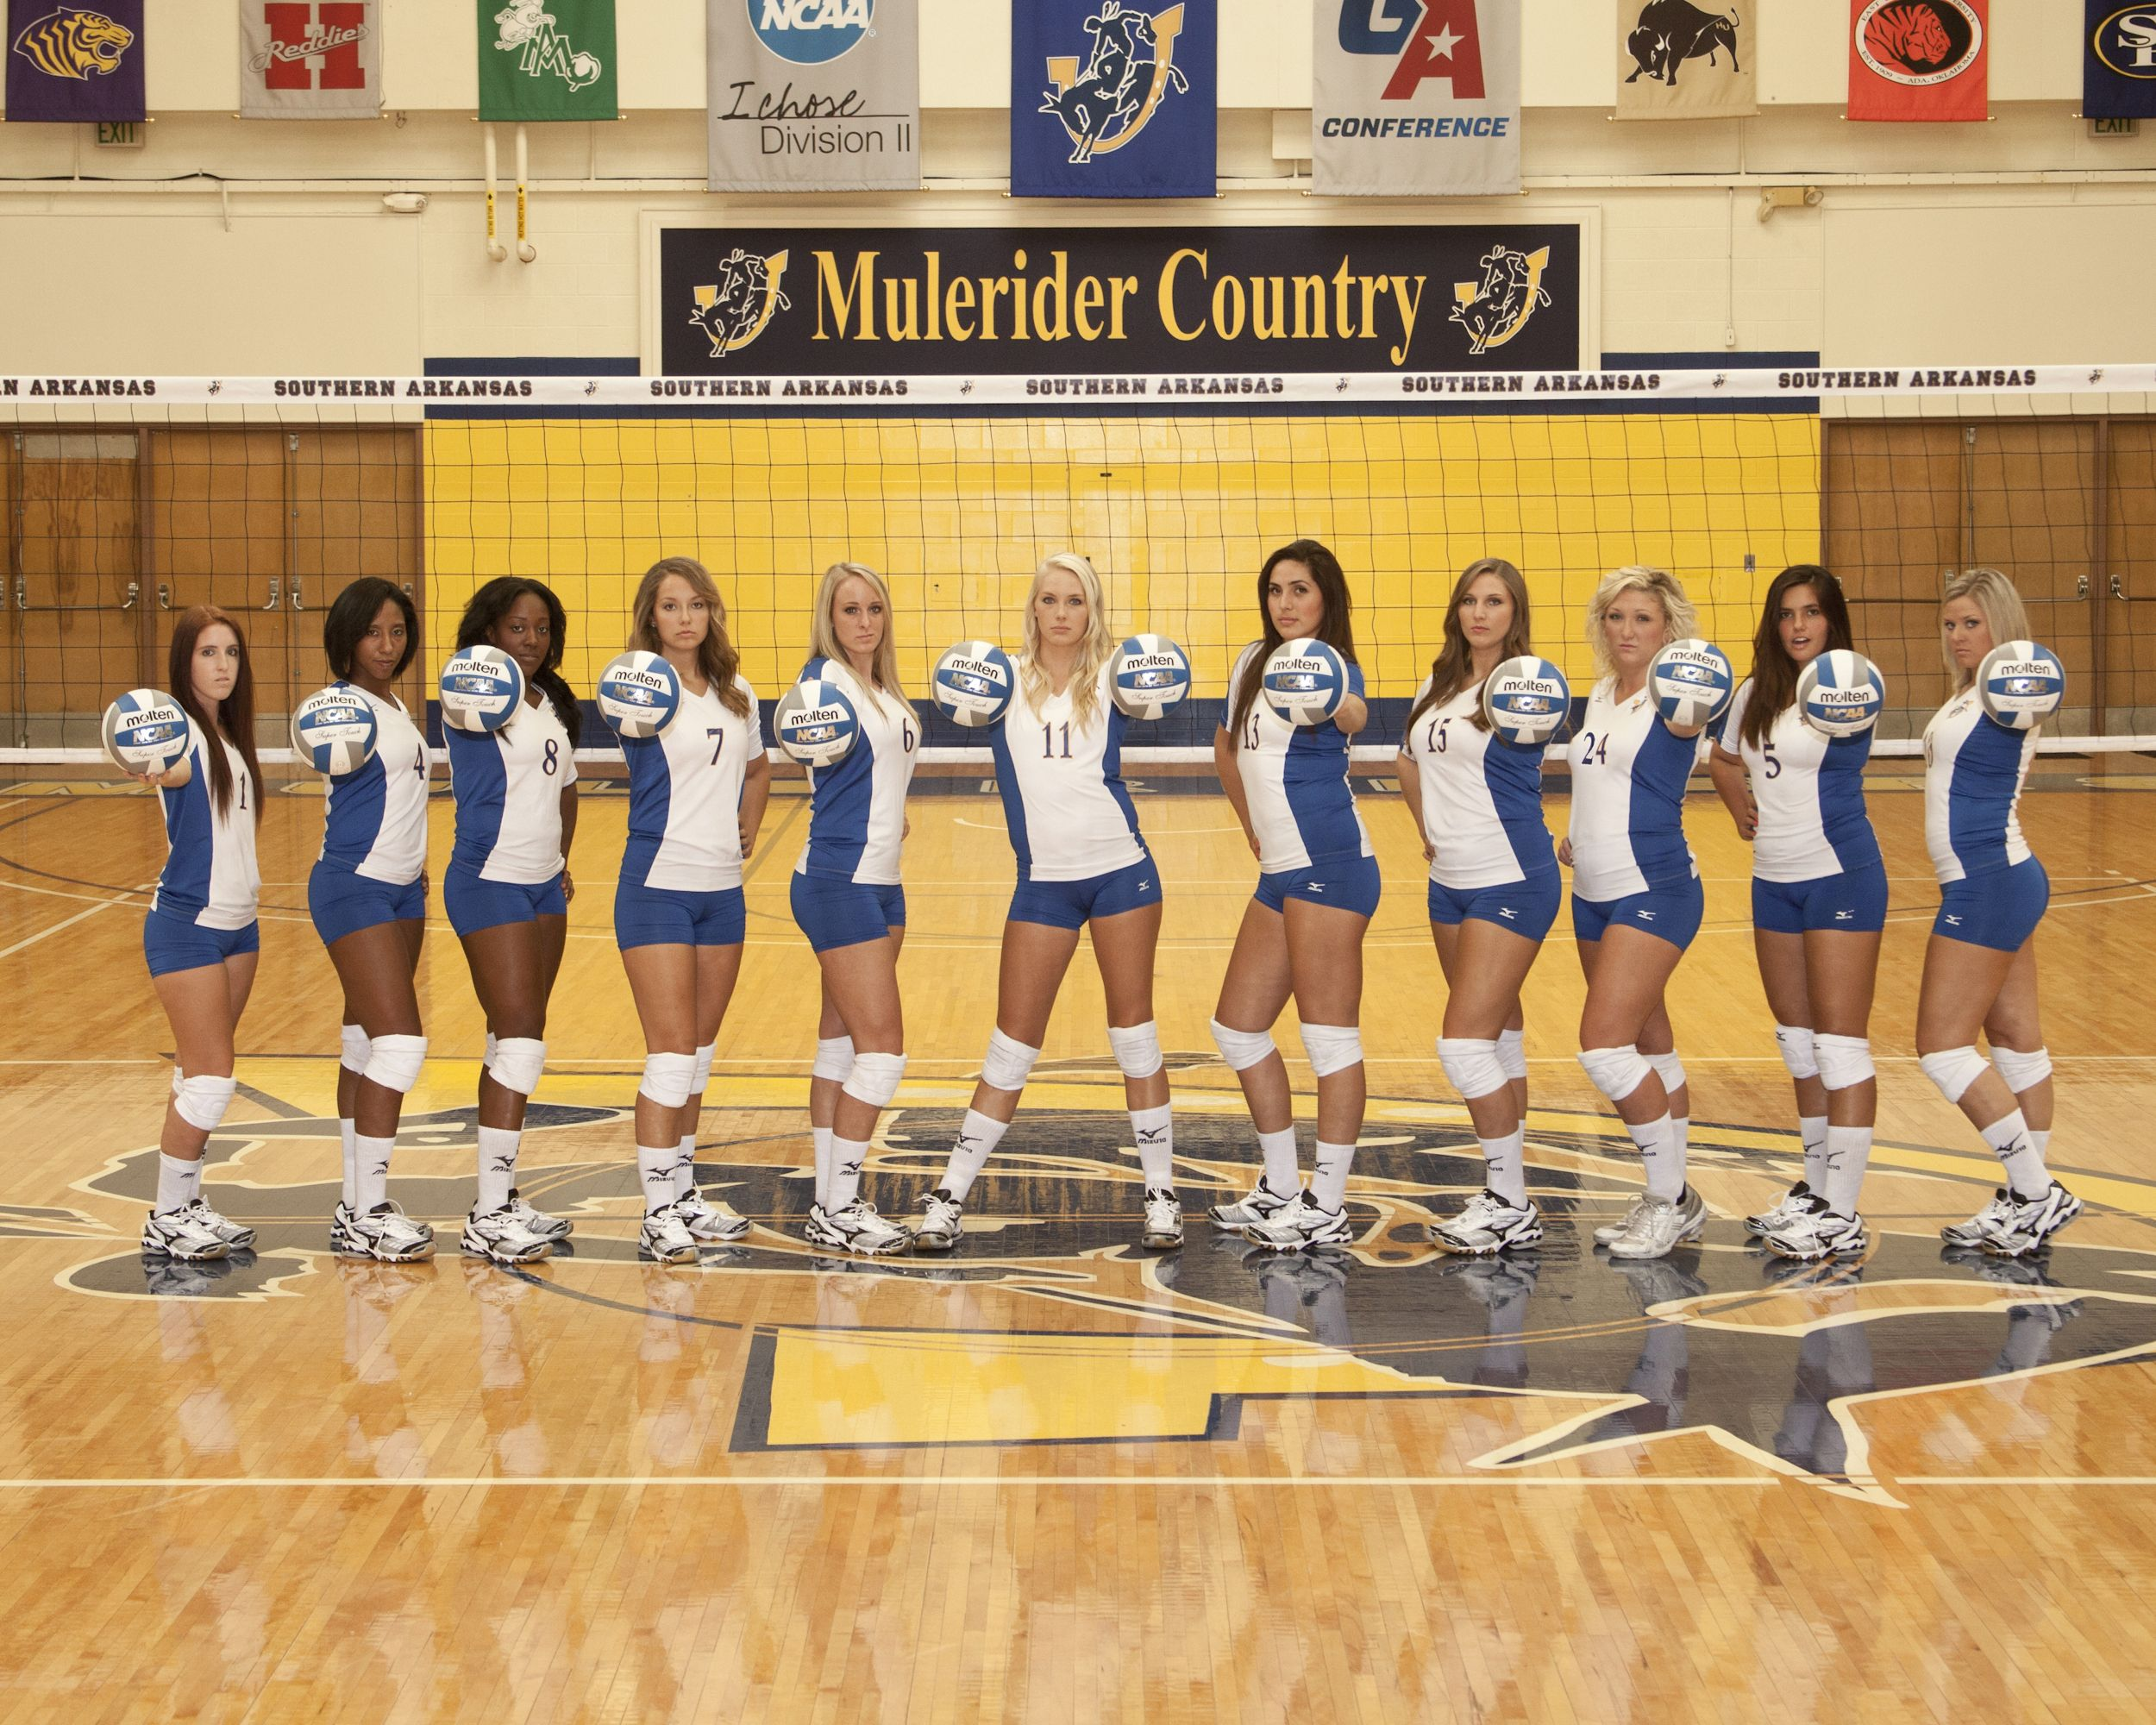 Volleyball Team Photo Idea Volleyball Team Photos Volleyball Photos Volleyball Team Pictures